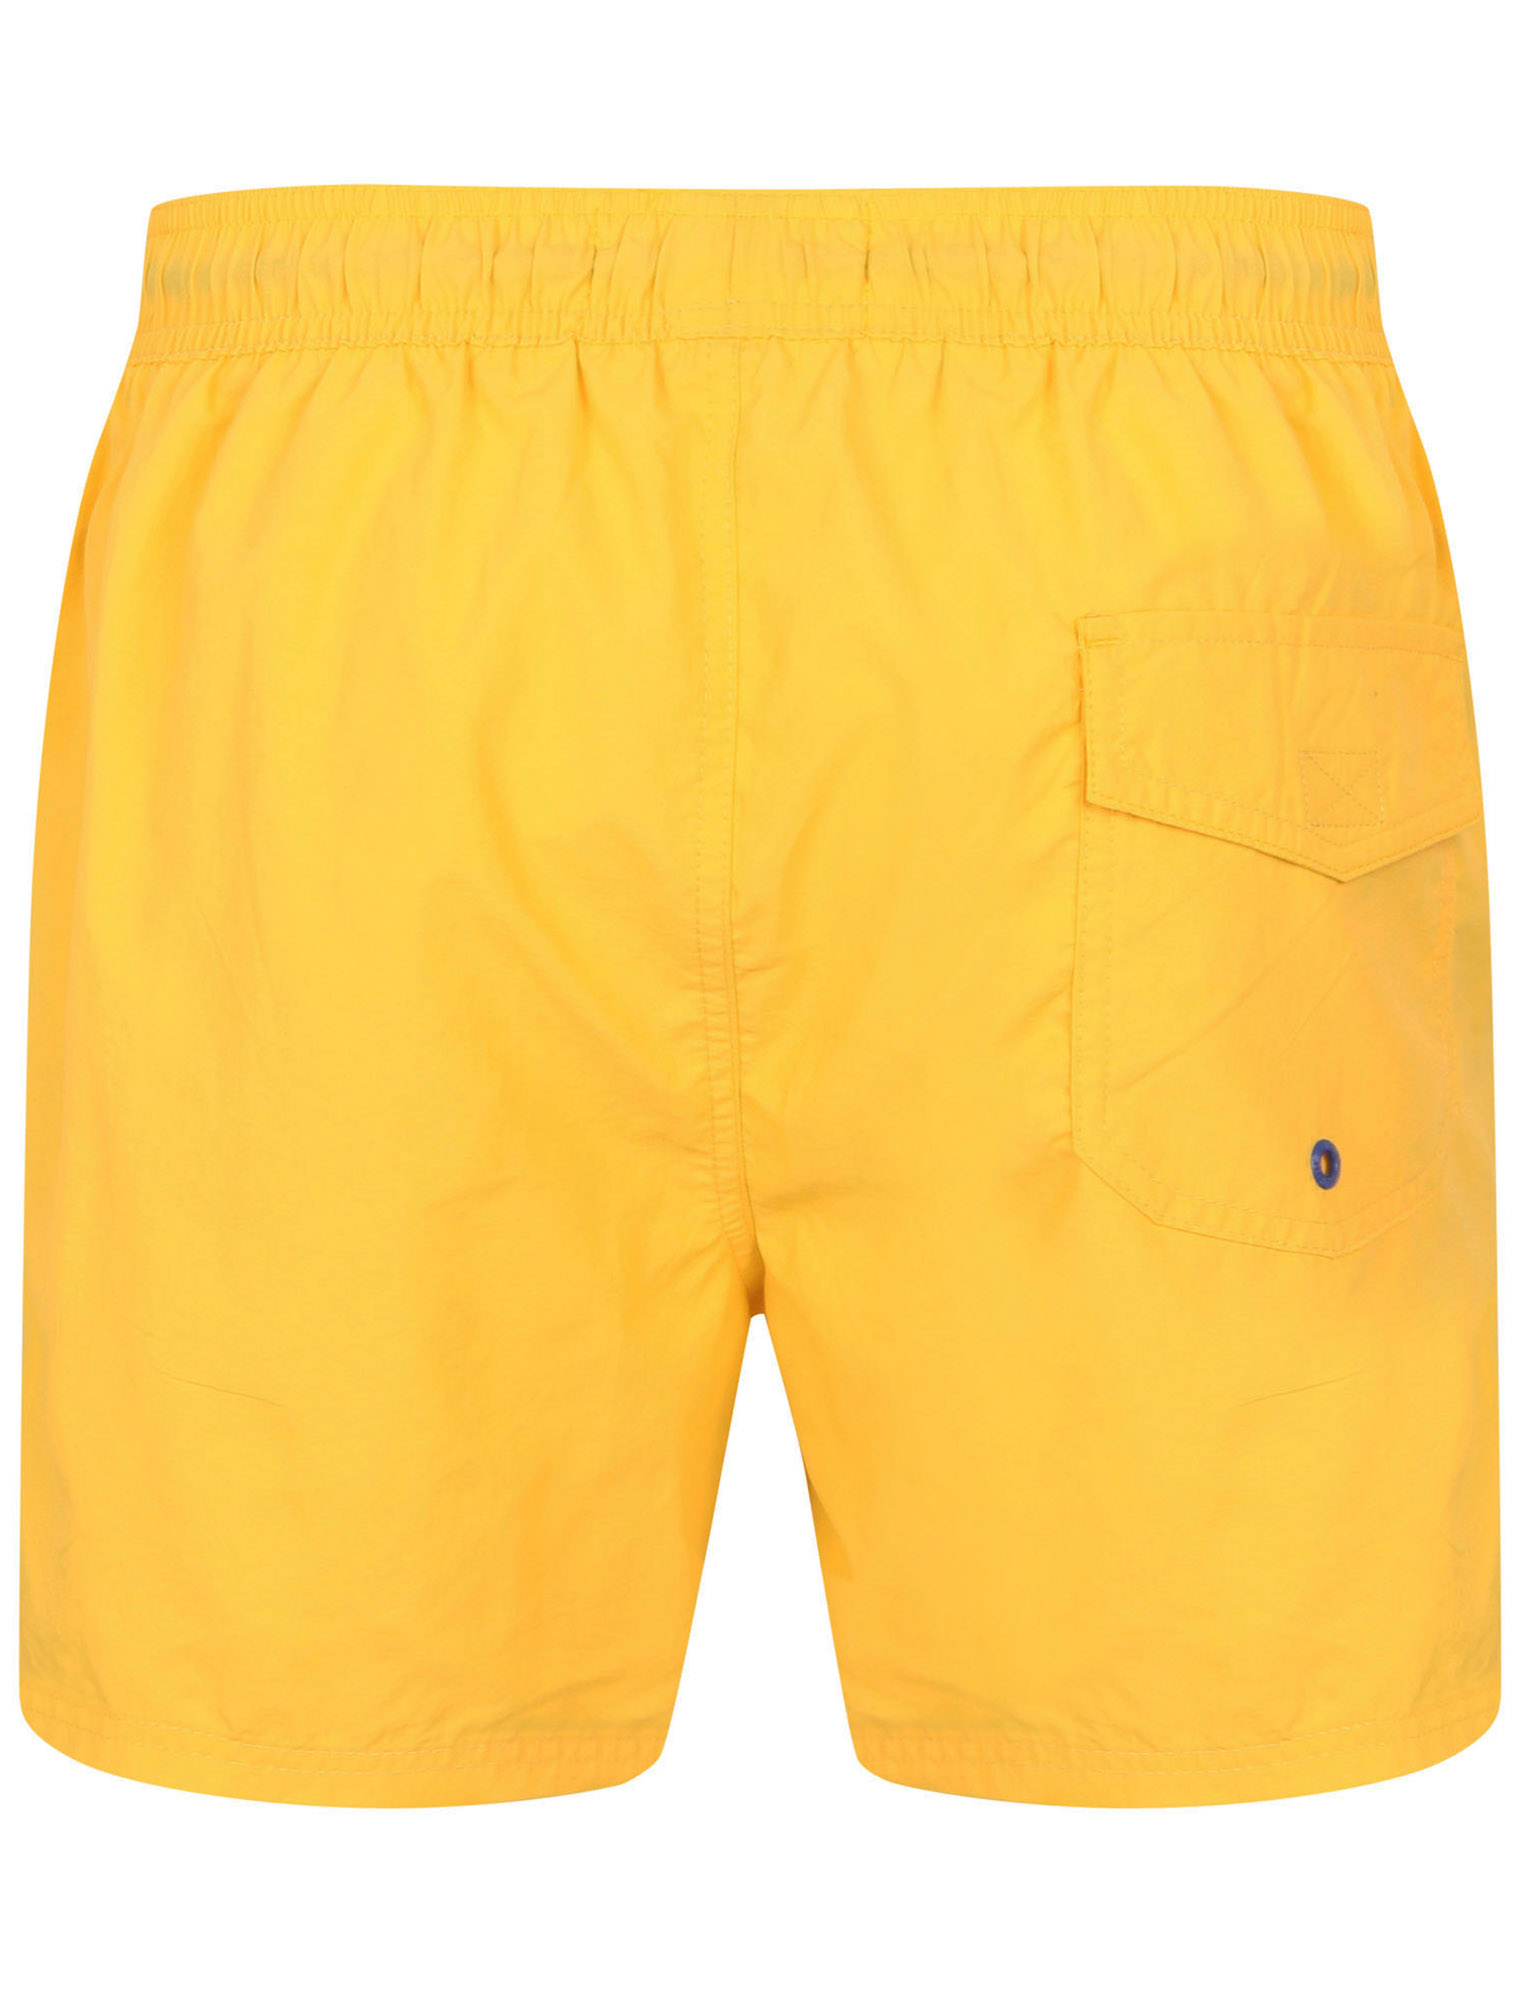 New-Mens-Tokyo-Laundry-Branded-Classic-Soft-Swim-Shorts-With-Pockets-Size-S-XXL thumbnail 19